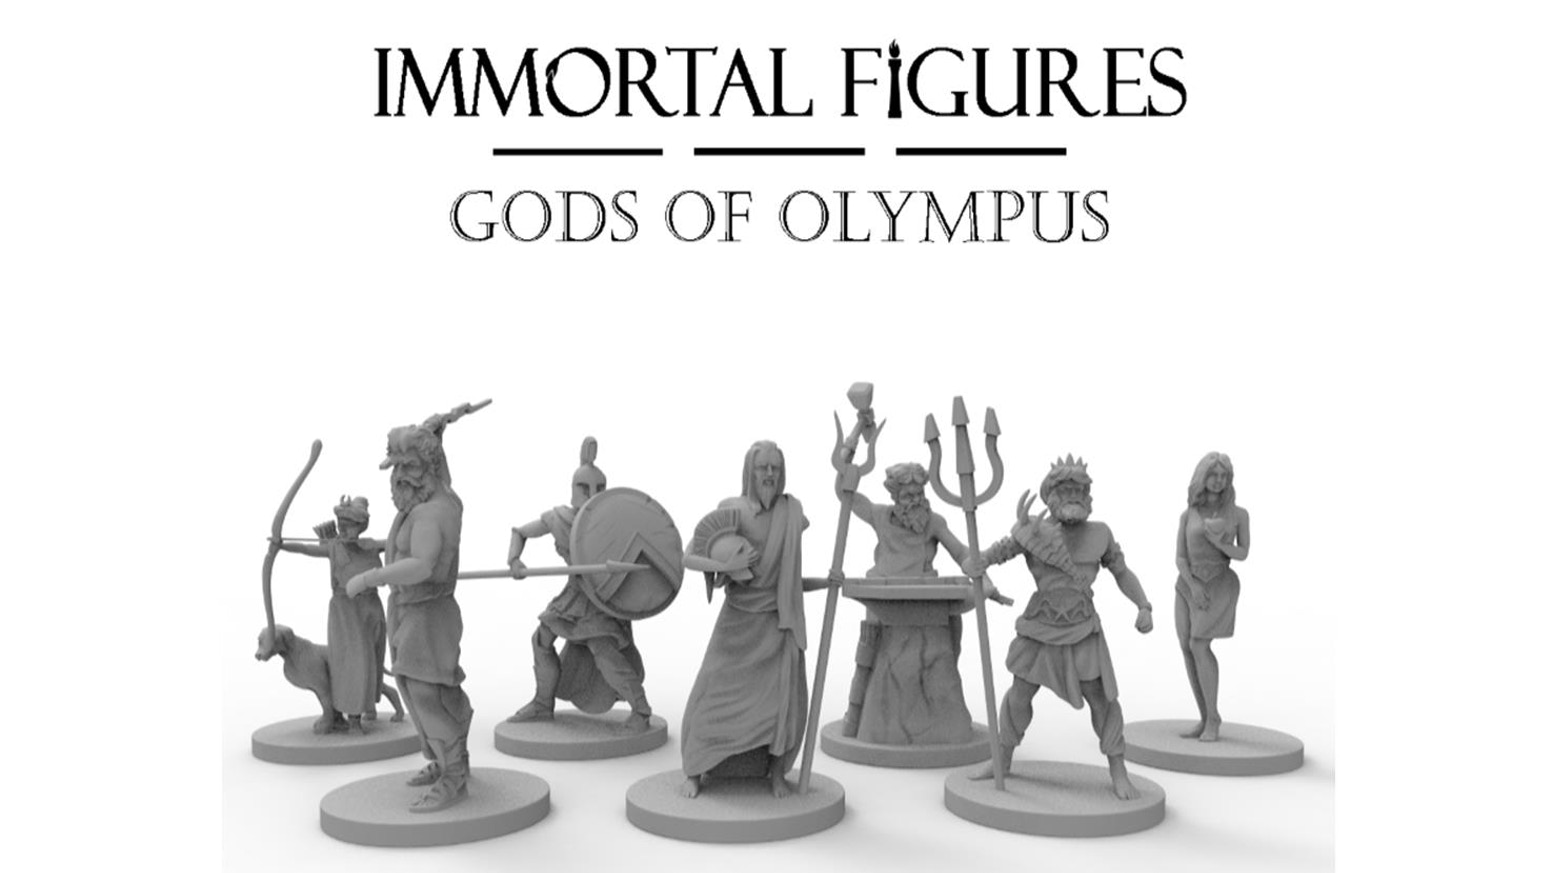 High quality 28/32 mm scale tabletop gaming miniatures based on the Gods and Goddesses of Greek Mythology.